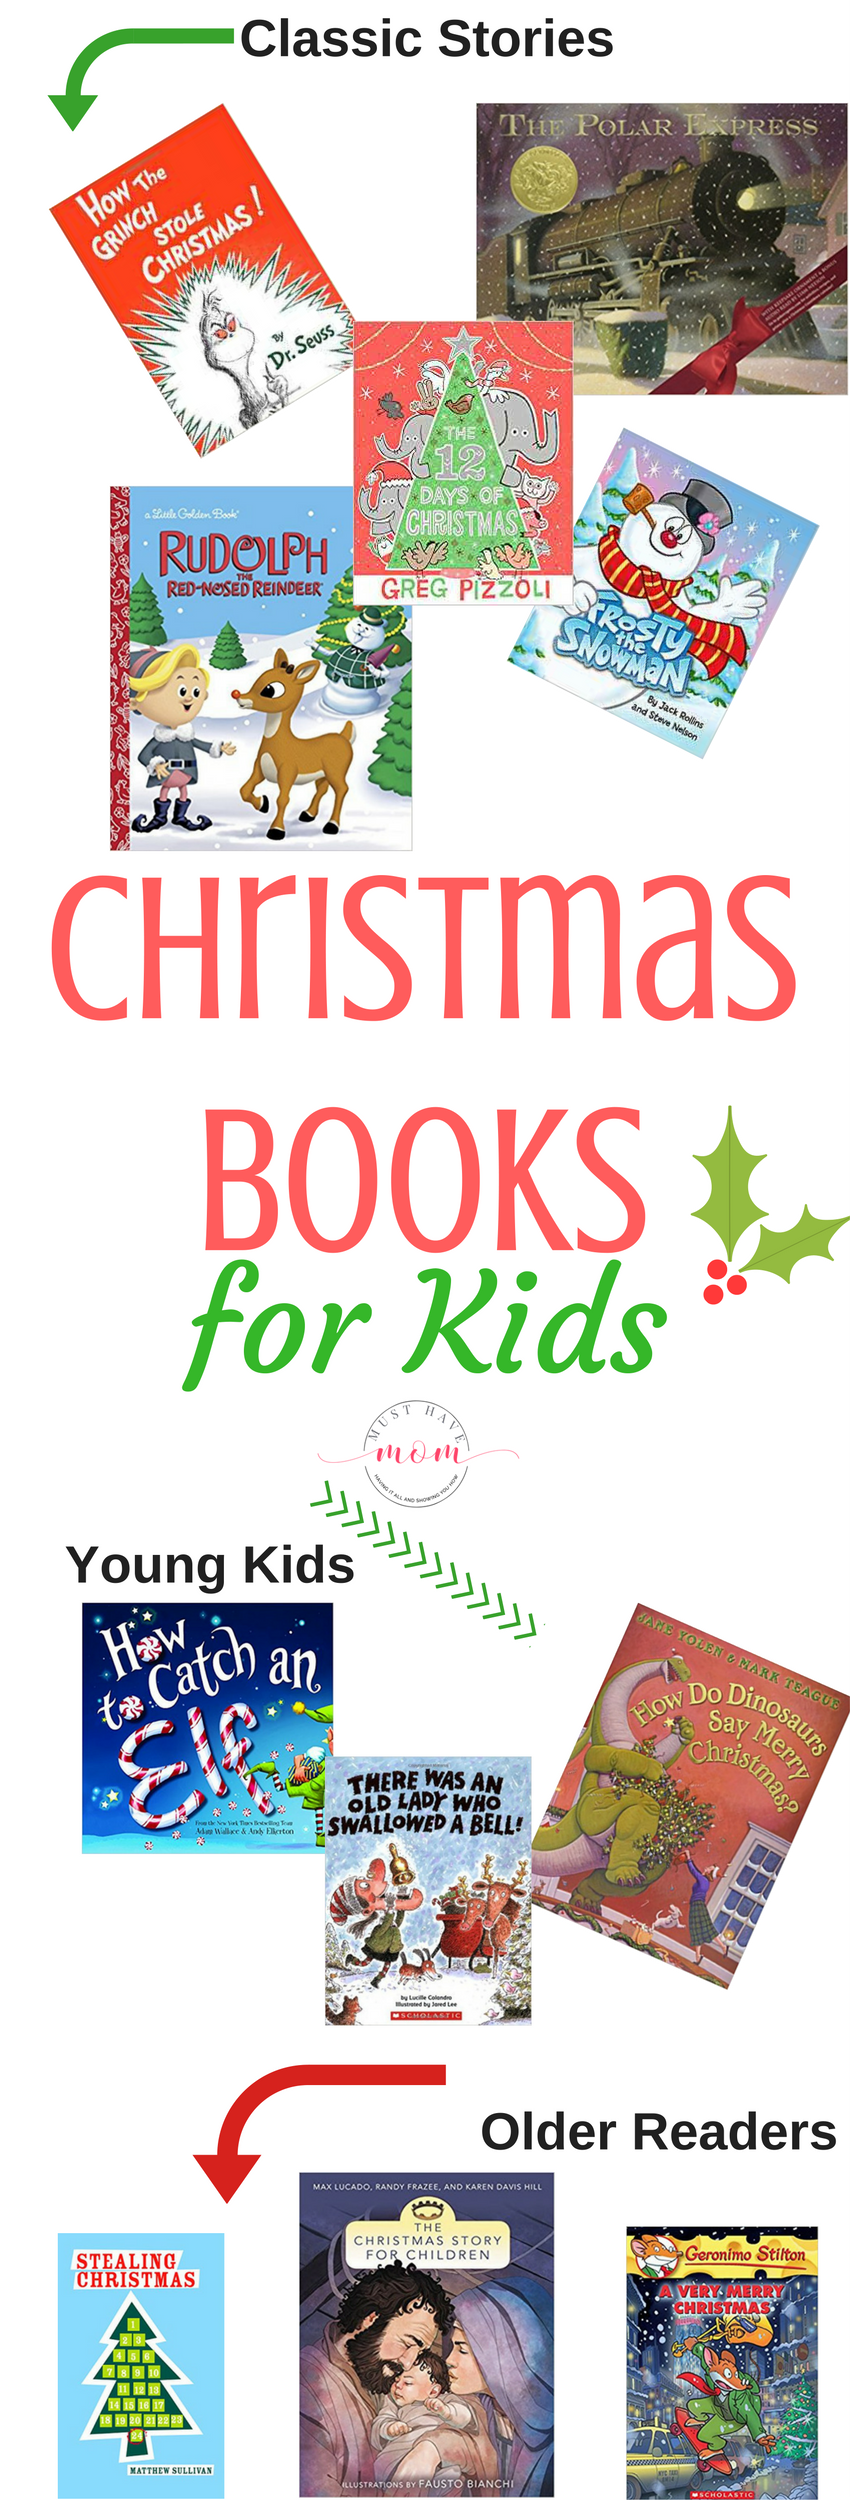 If you have a little one who loves reading, you are going to want to check out these great Christmas Books for Kids. Find some old favorites and discover some new ones.